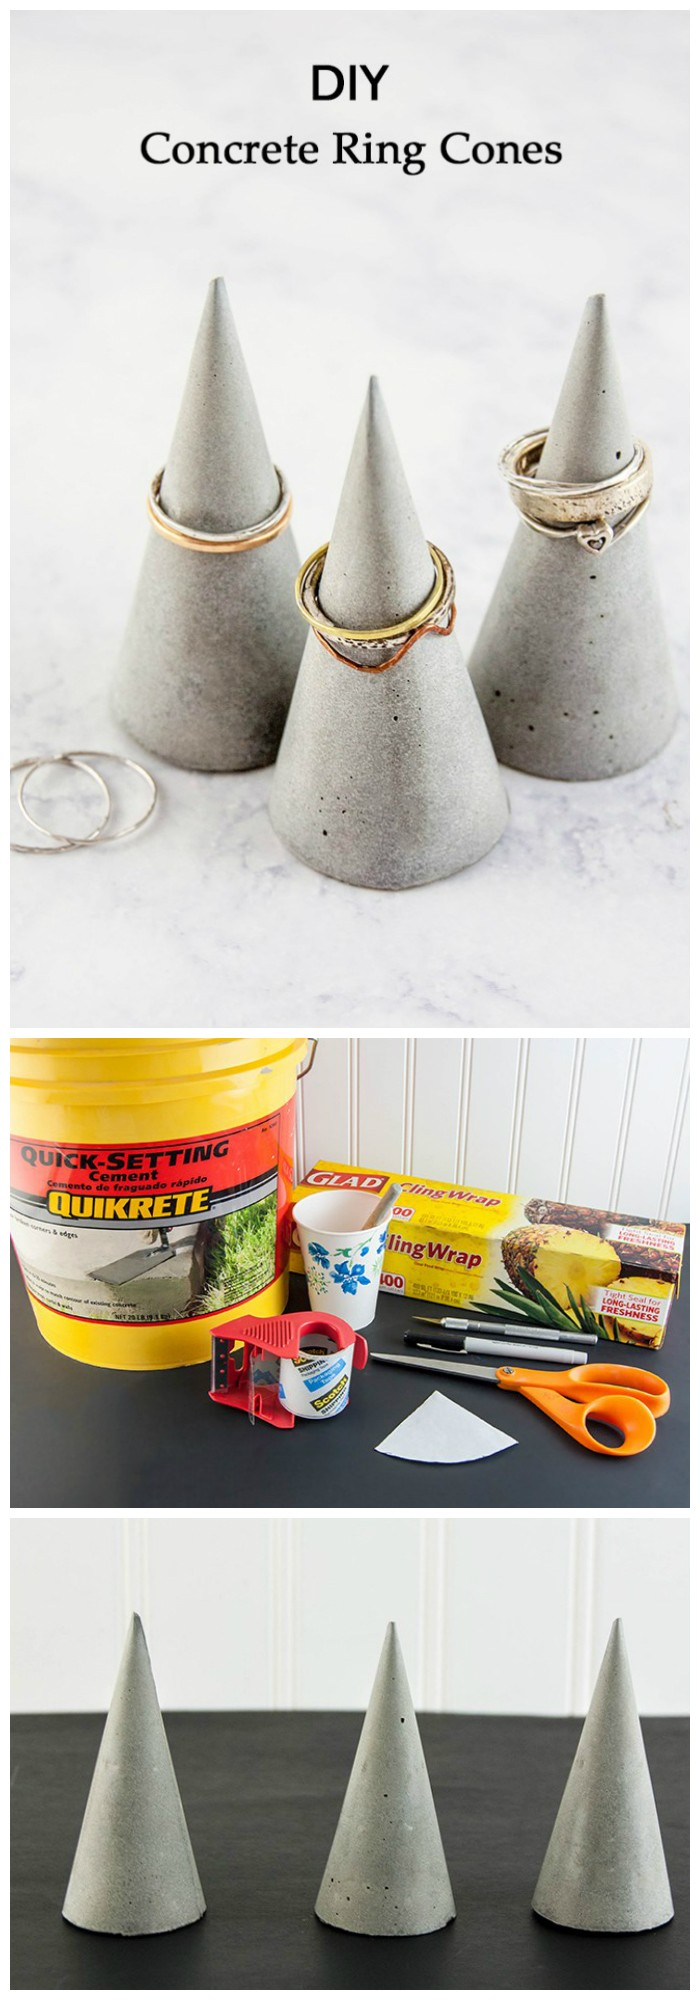 DIY Concrete Ring Cones DIY Concrete Projects To Make Your Home Creative